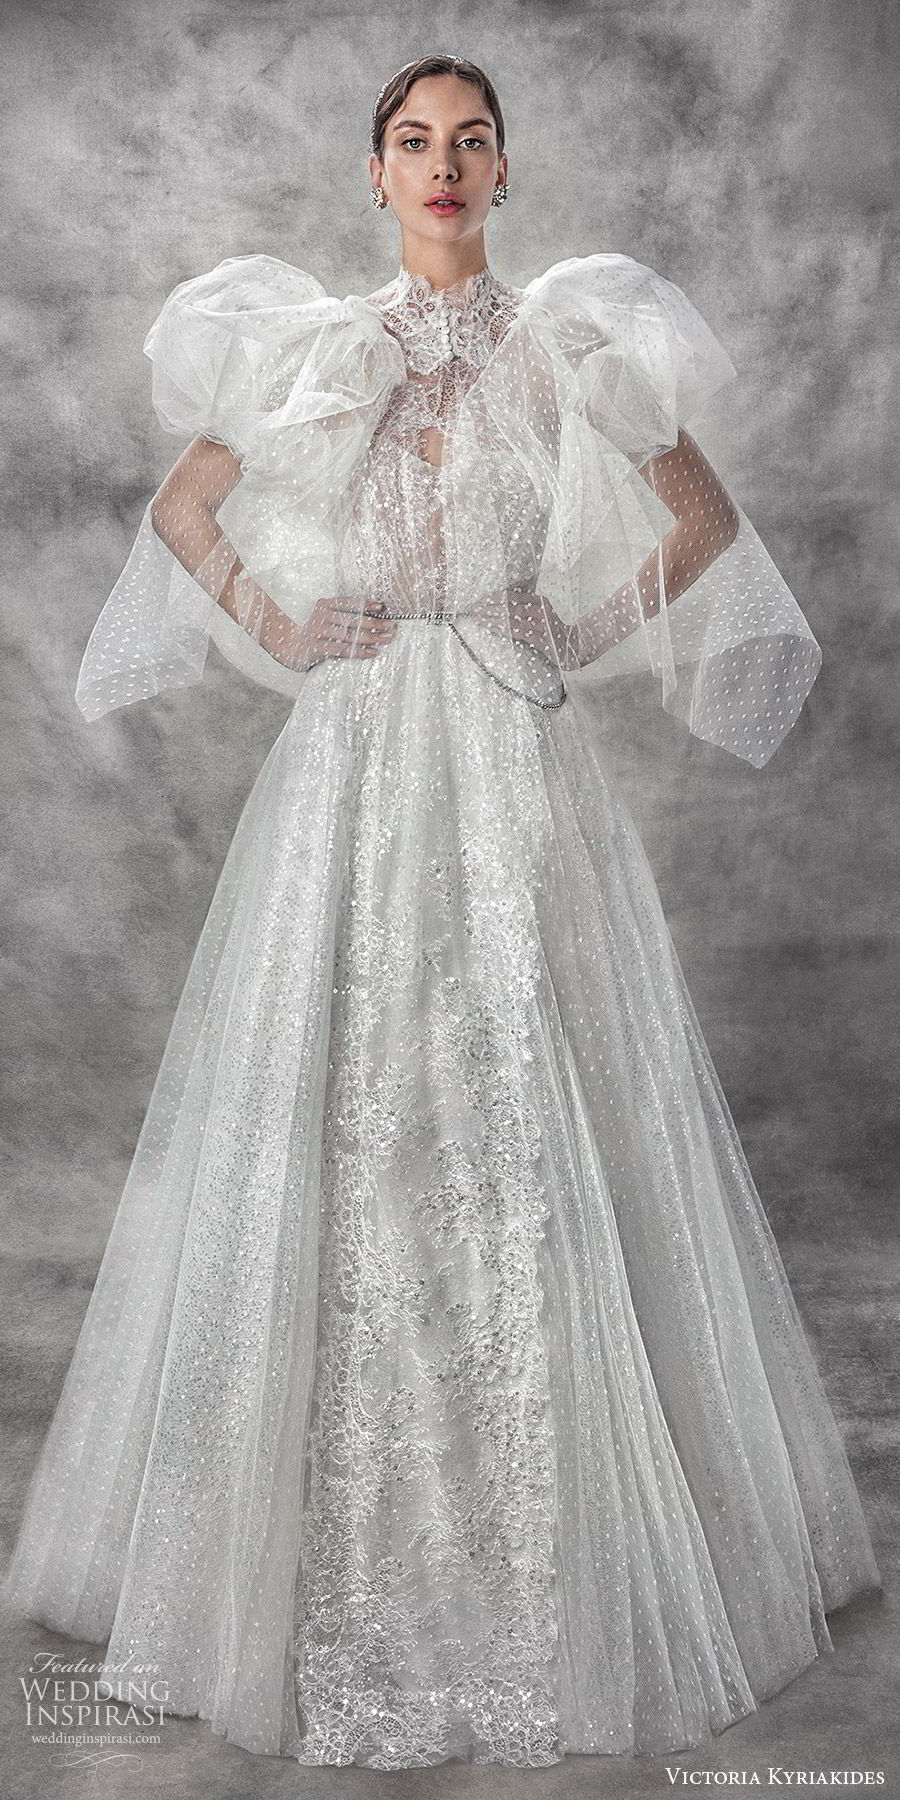 victoria kyriakides spring 2020 bridal sleeveless halter neck sheer bodice sweetheart fully embellished a line ball gown wedding dress (3) sheer puff sleeve cape glitzy romantic mv